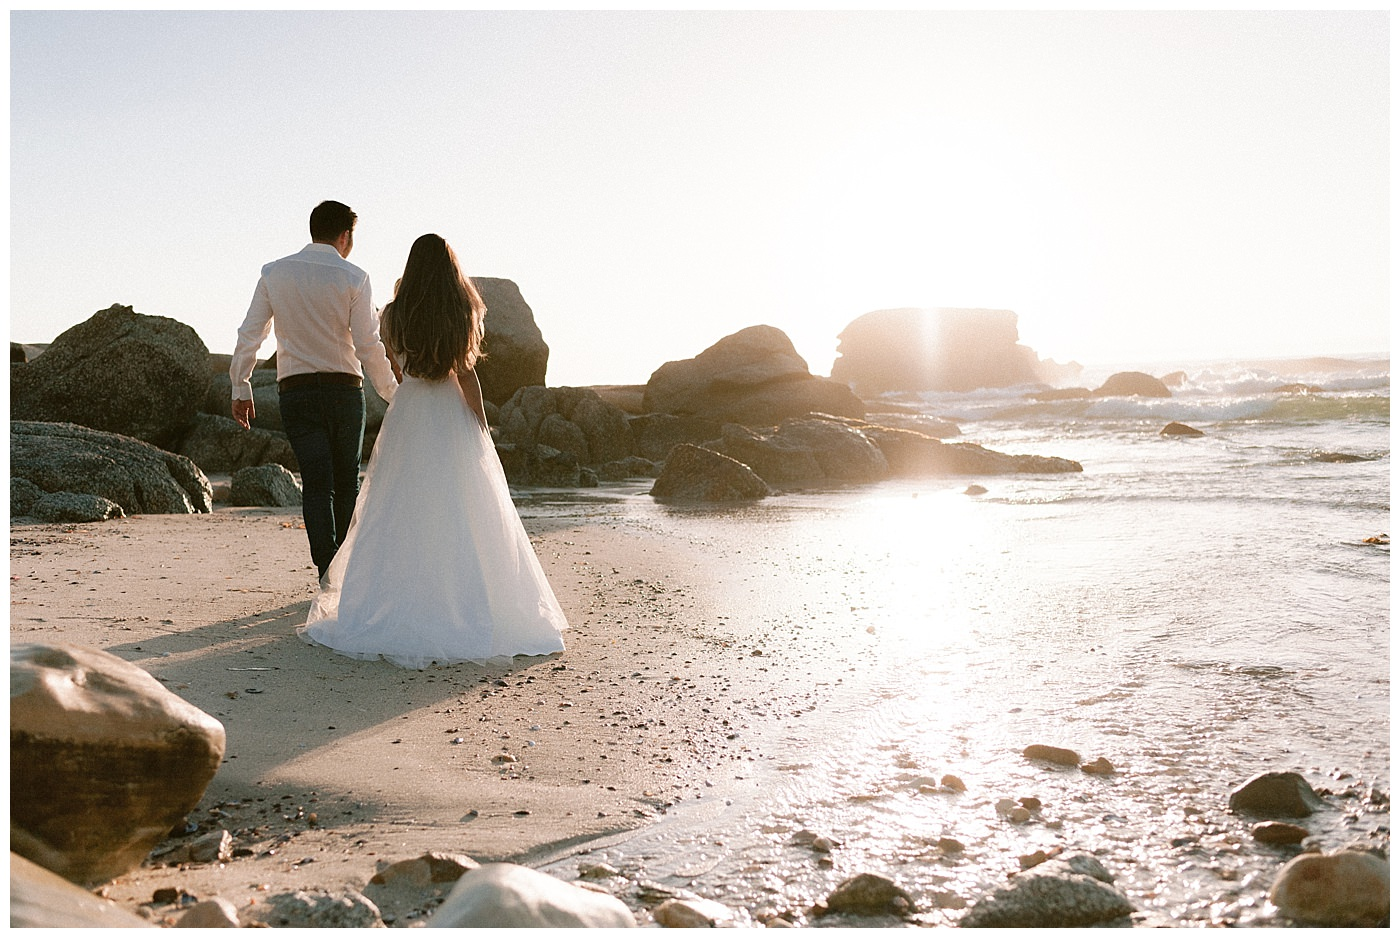 Cape Town beach wedding photographer